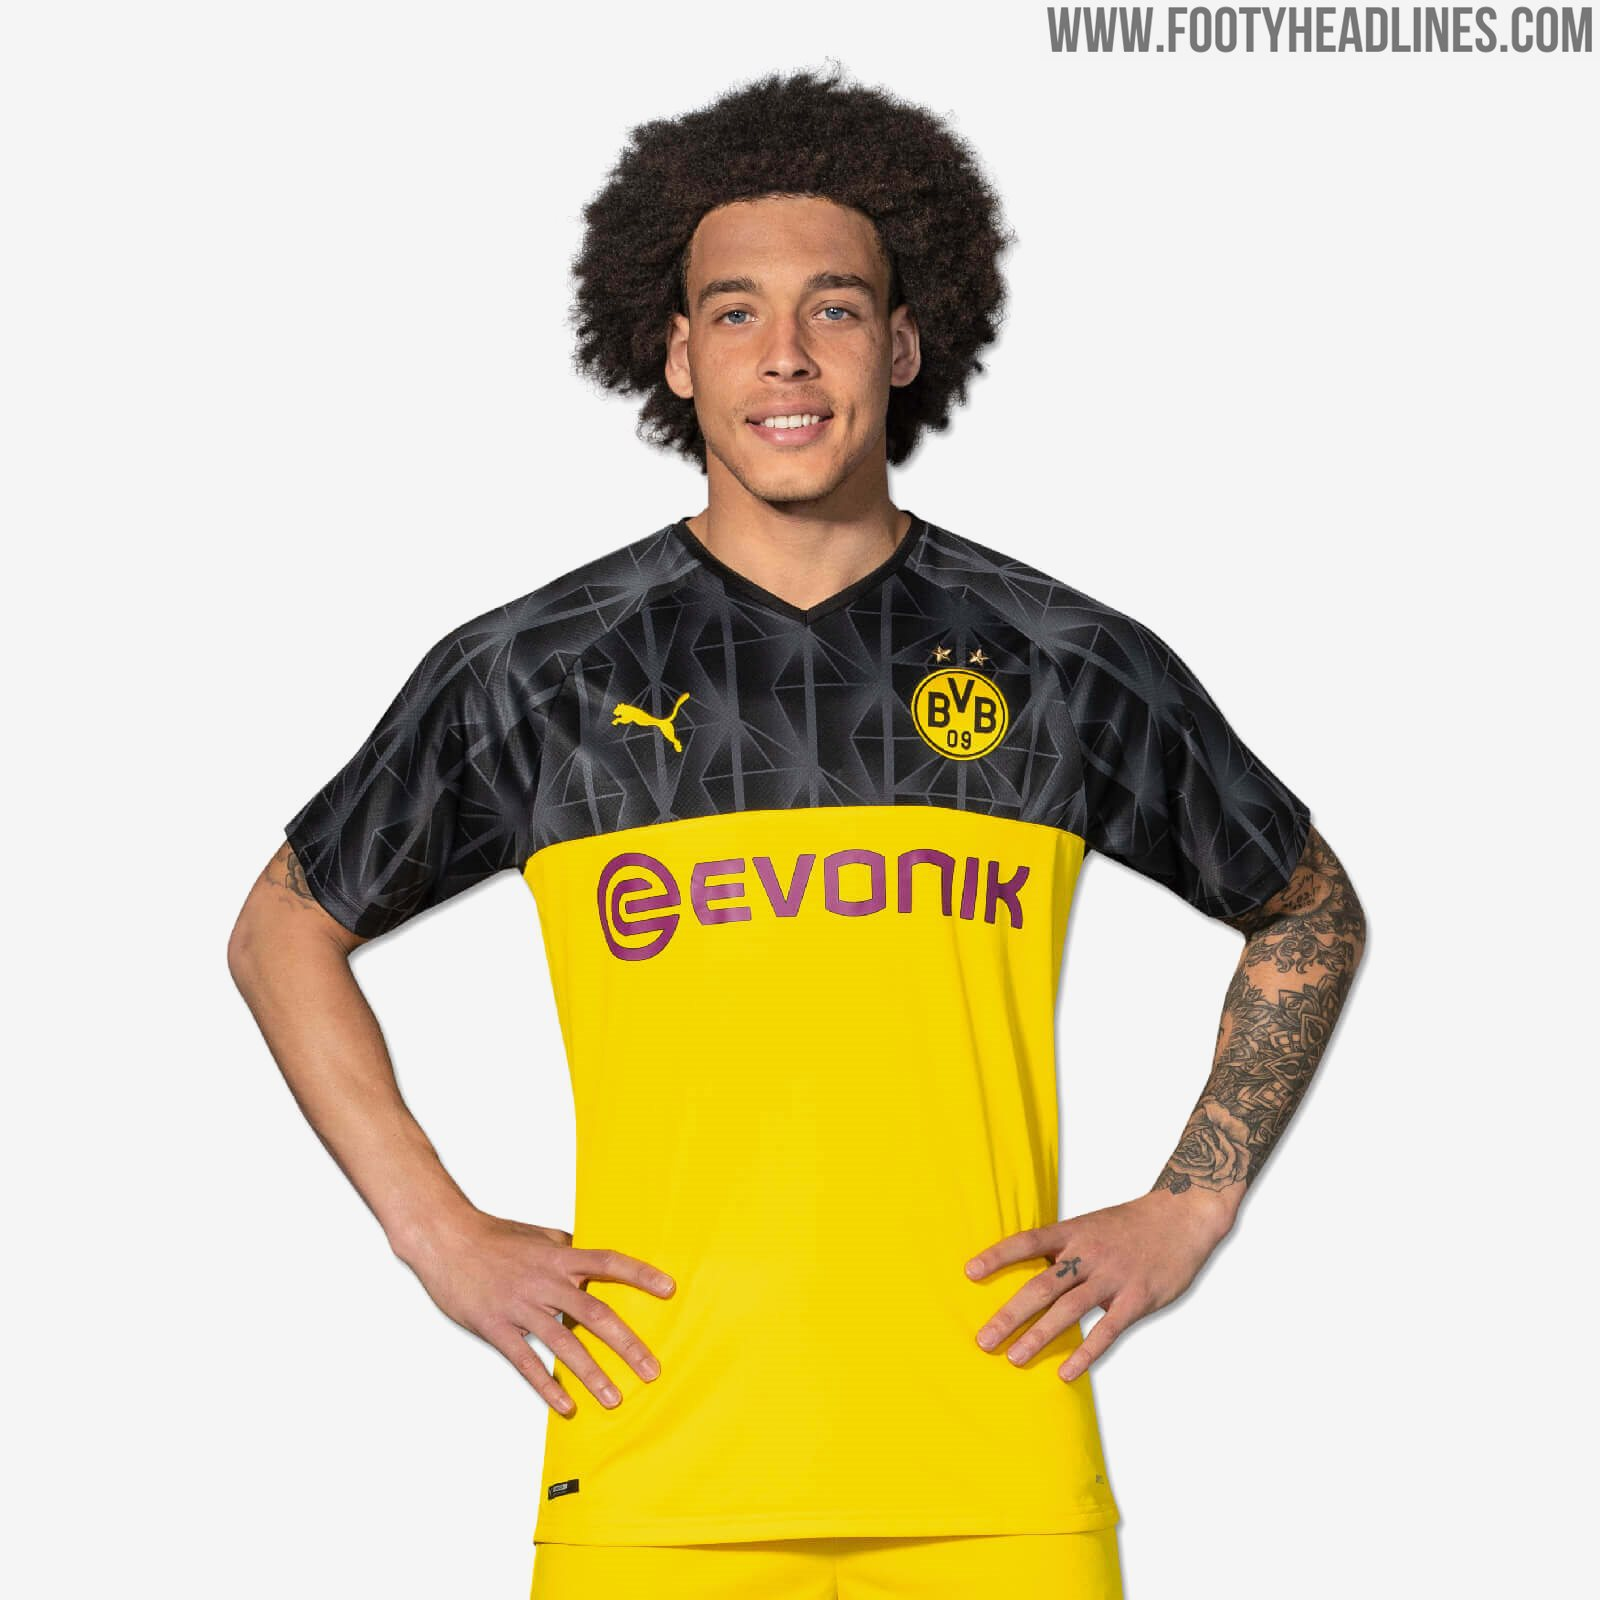 new concept caf34 79122 Borussia Dortmund 19-20 Champions League Kit Released ...